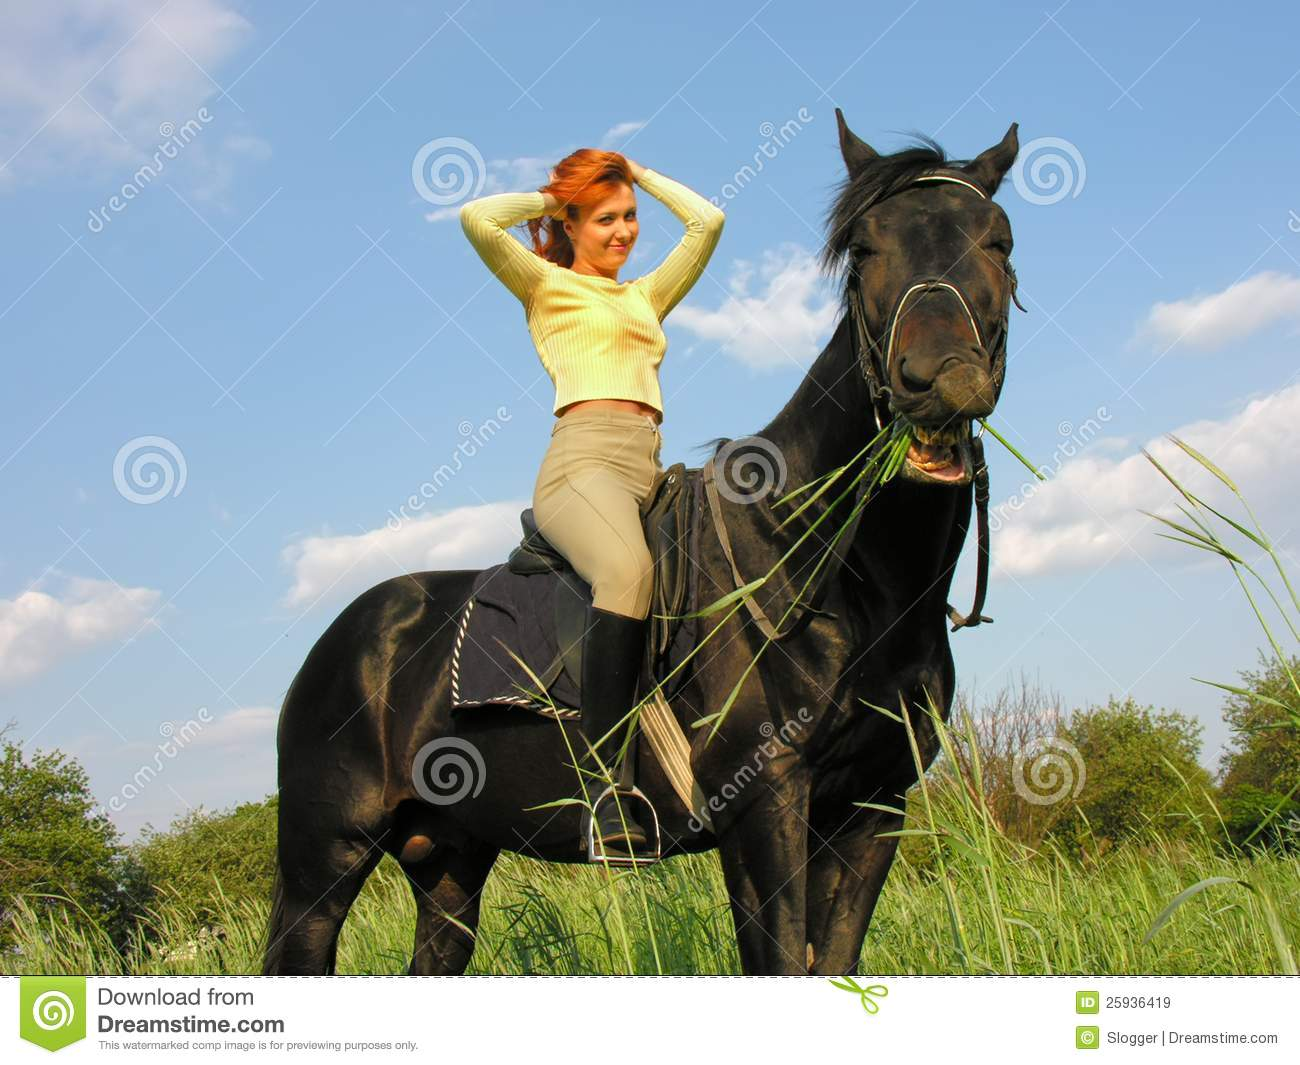 691 Funny Horse Rider Photos Free Royalty Free Stock Photos From Dreamstime